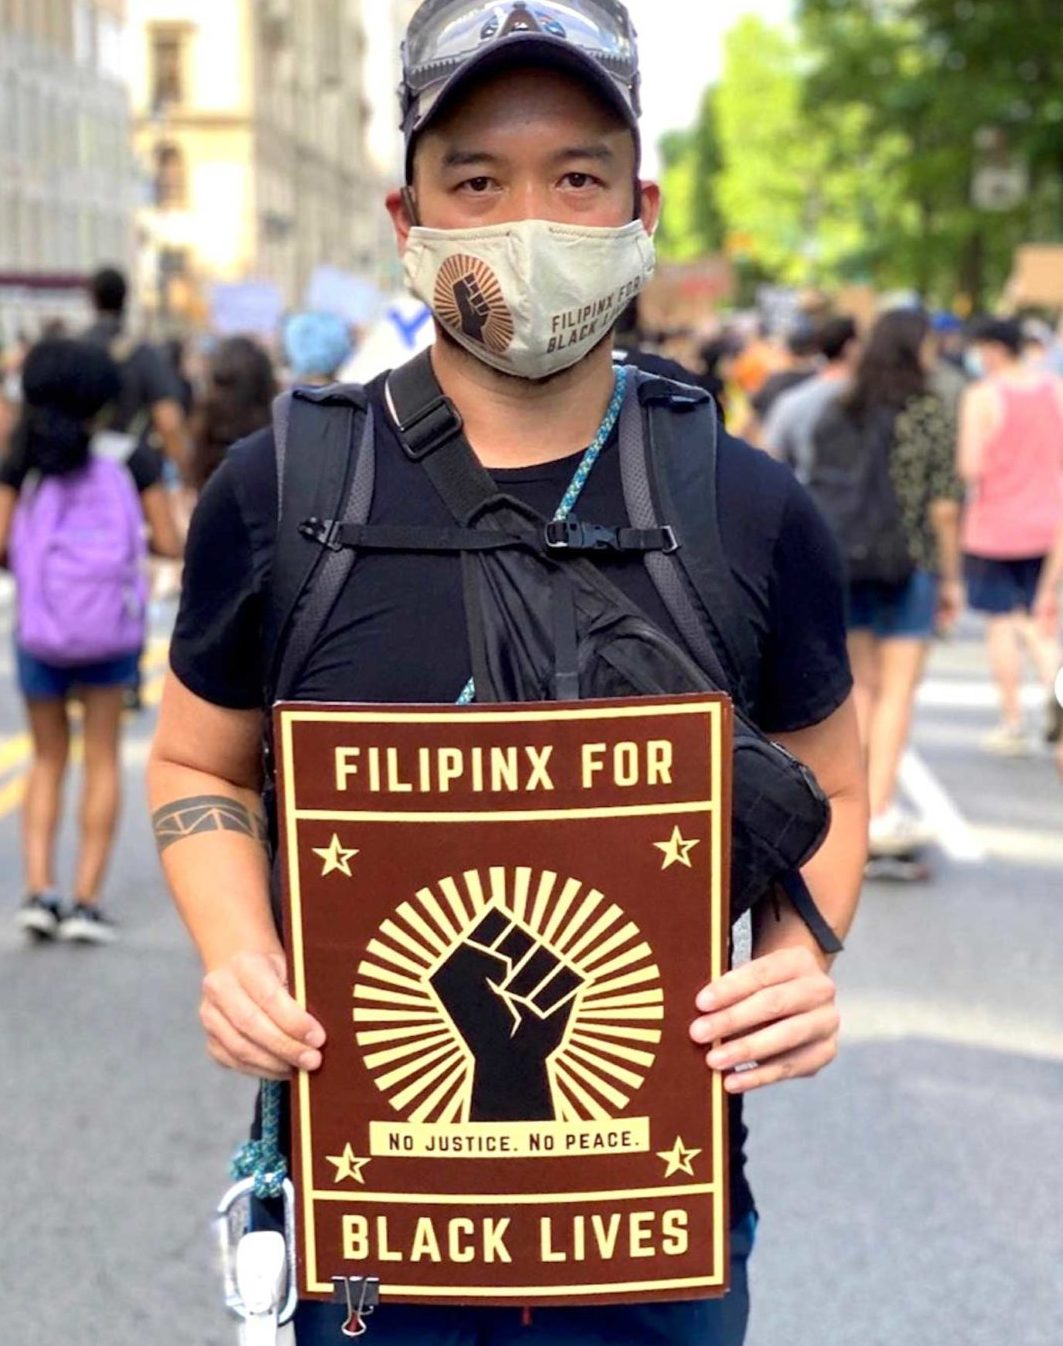 """A man wearing a face mask stands in front of a crowd during a protest. He is holding a poster with an image of a closed fist and the words """"Filipinx for Black Lives"""" across the top and bottom of the poster. Under the image of the fist are the words """"no justice, no peace."""""""